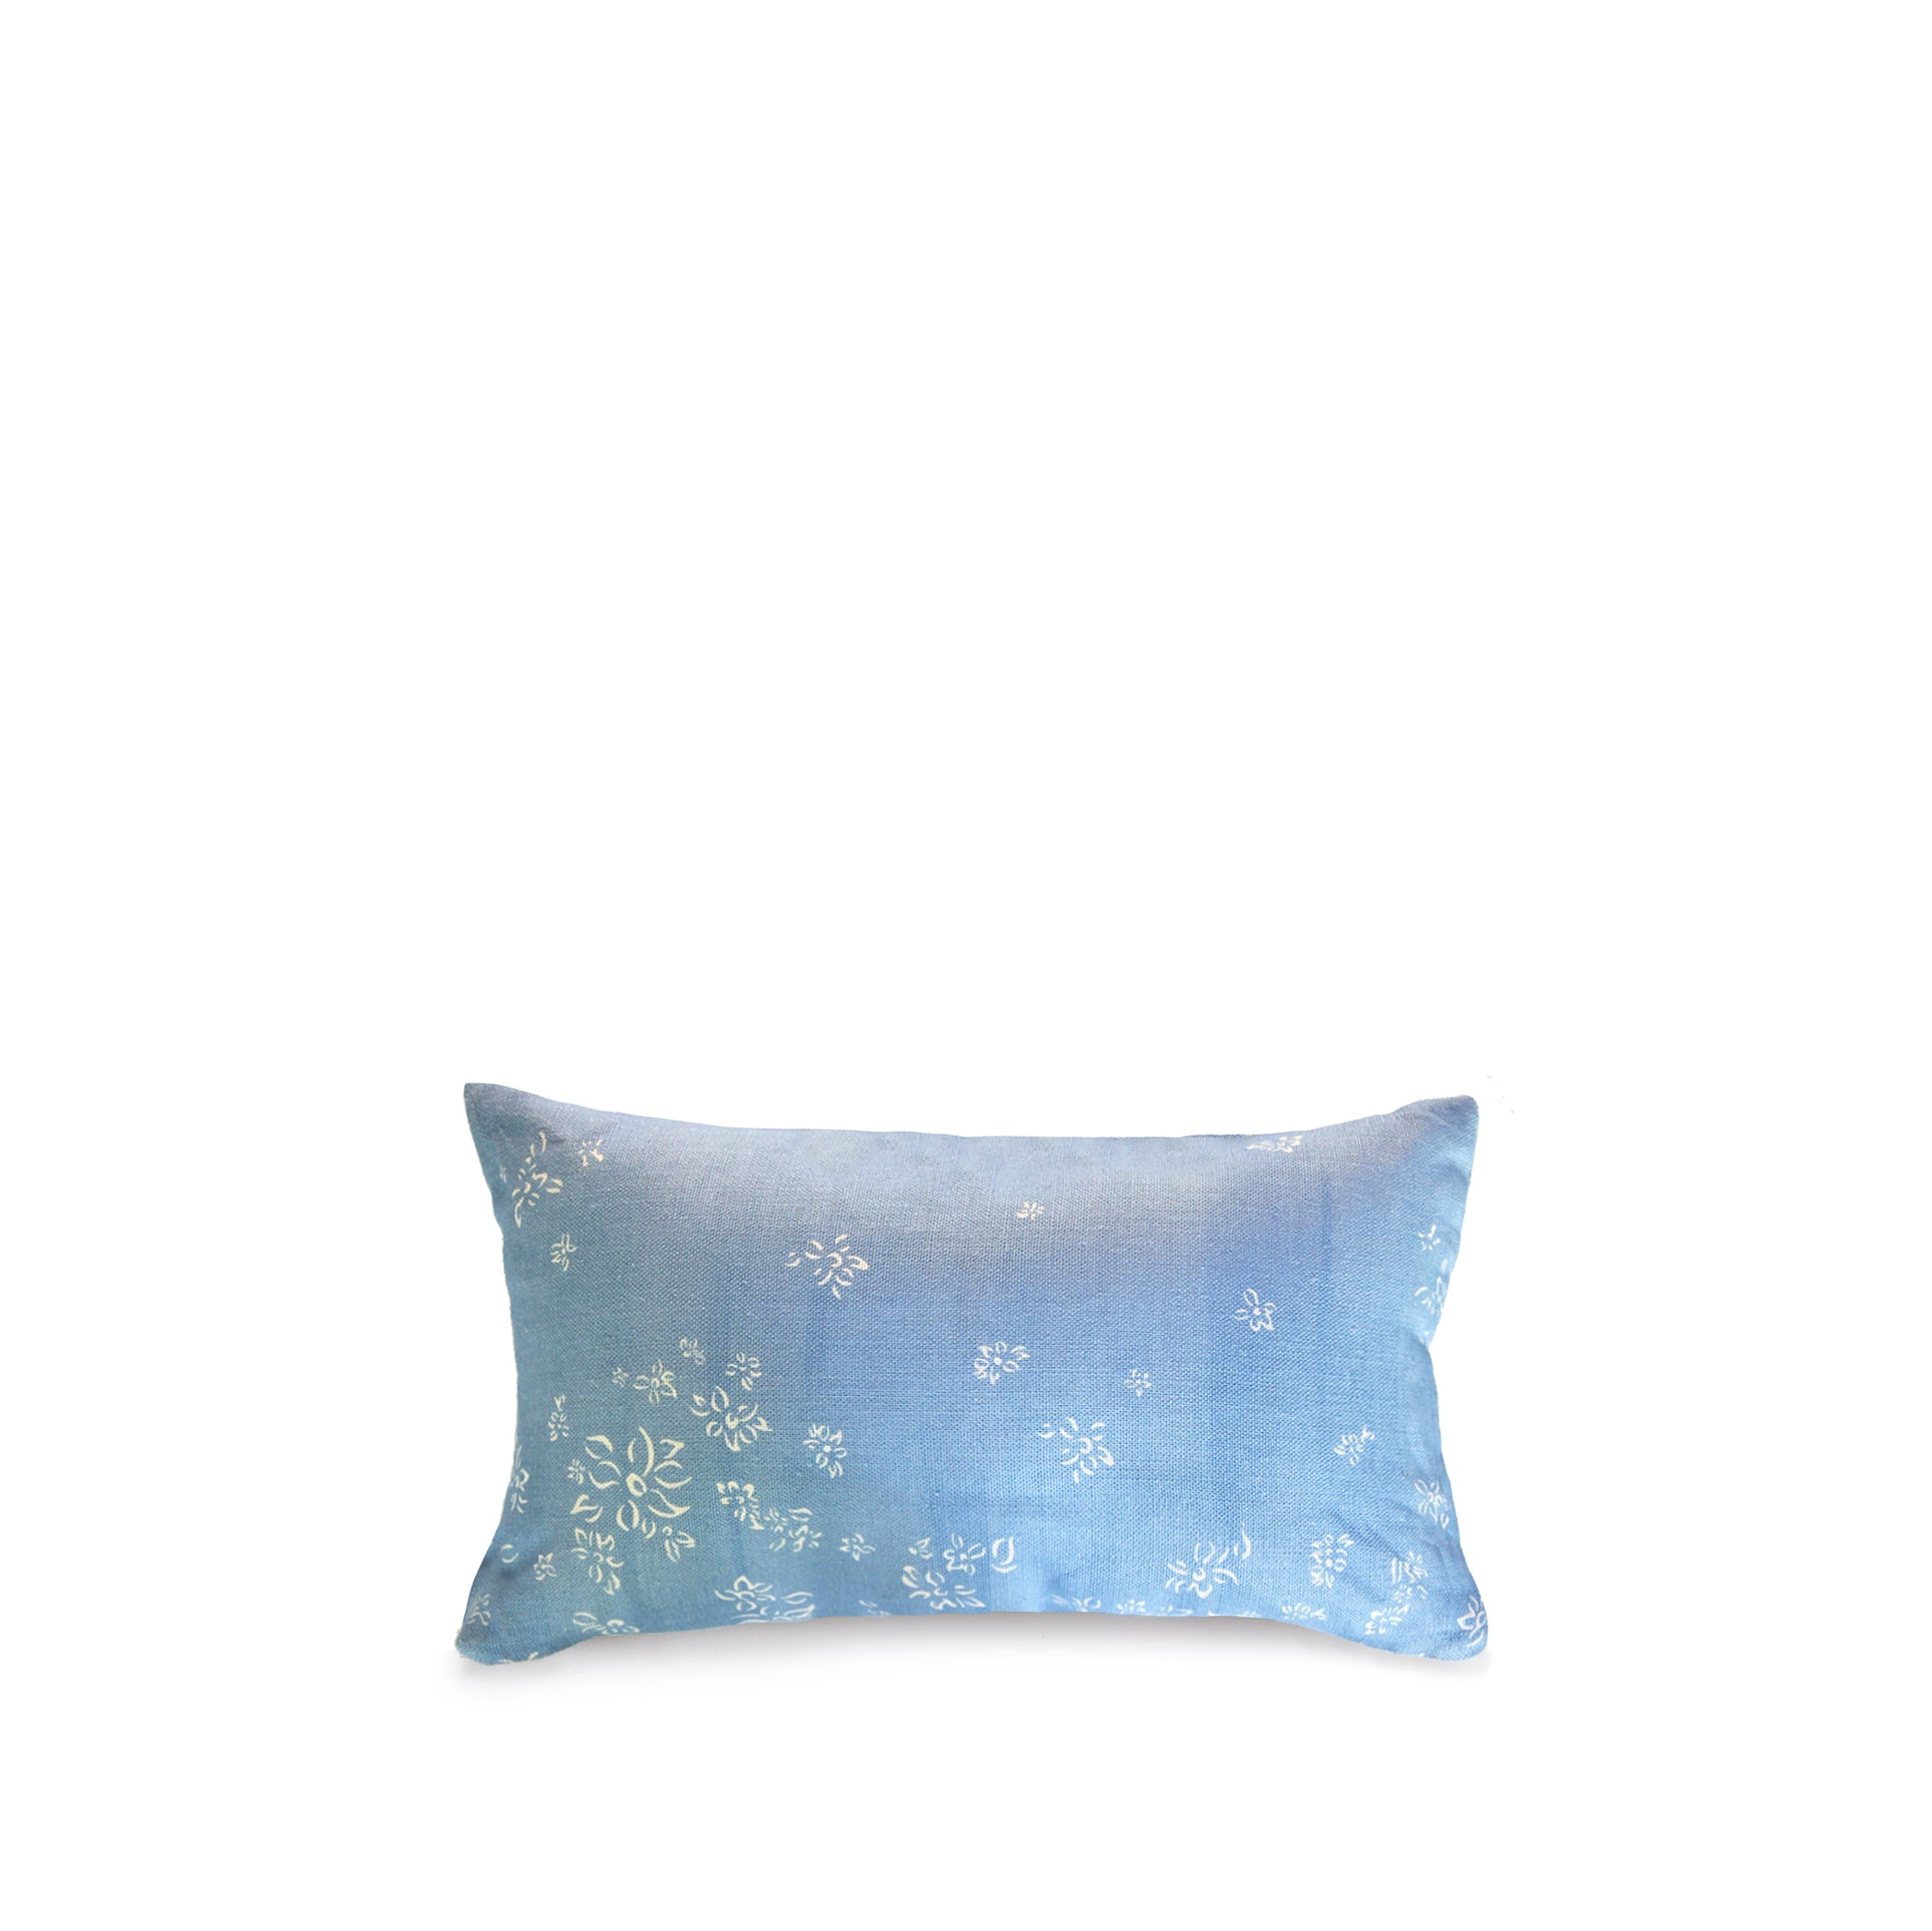 Heavy Linen Falling Flower Cushion in Full Field Pale Blue, 50cm x 30cm